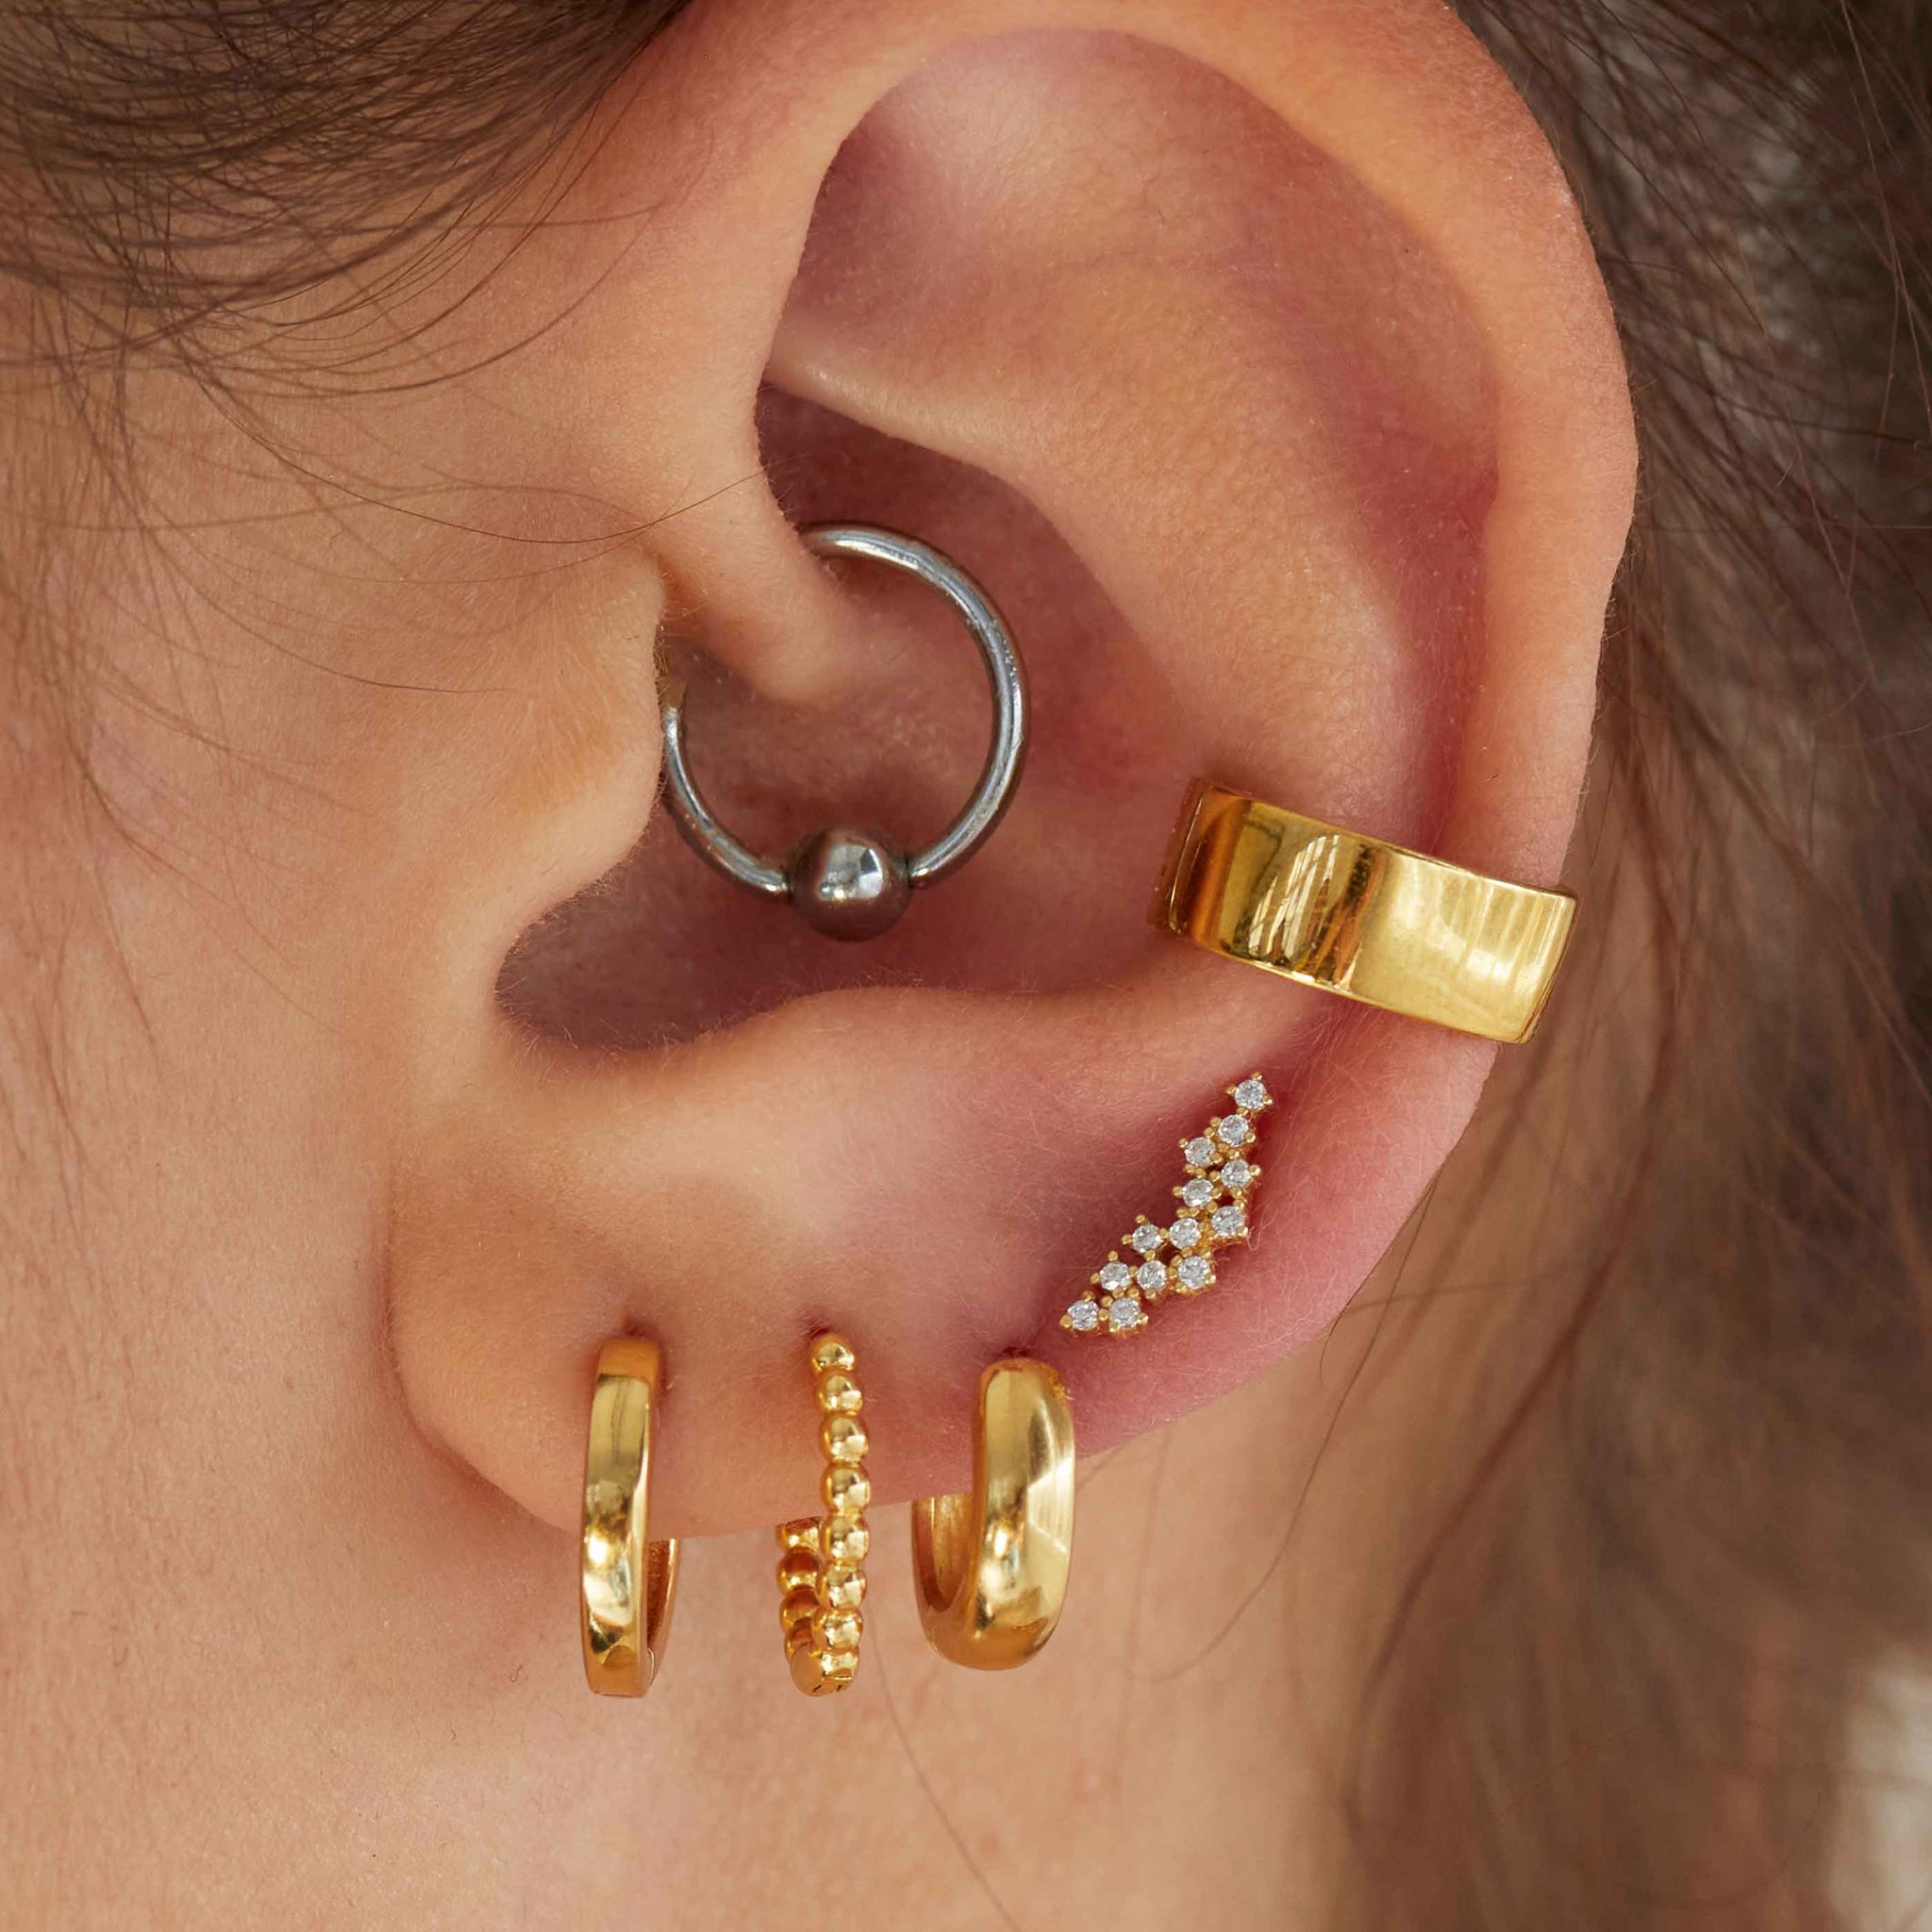 Jewelled Barbell in Gold worn with hoops